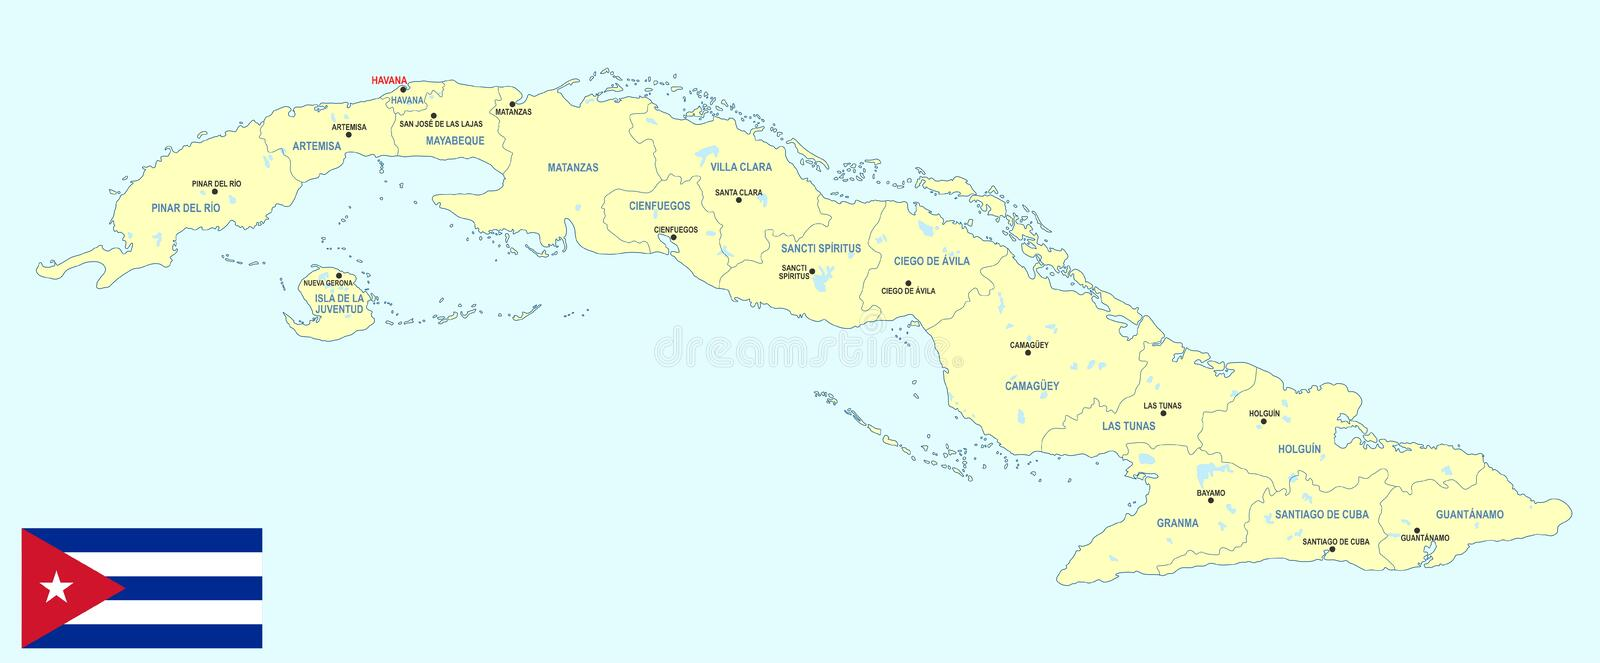 Cuba map - cdr format. Cuba map with regions main cities and flag vector illustration